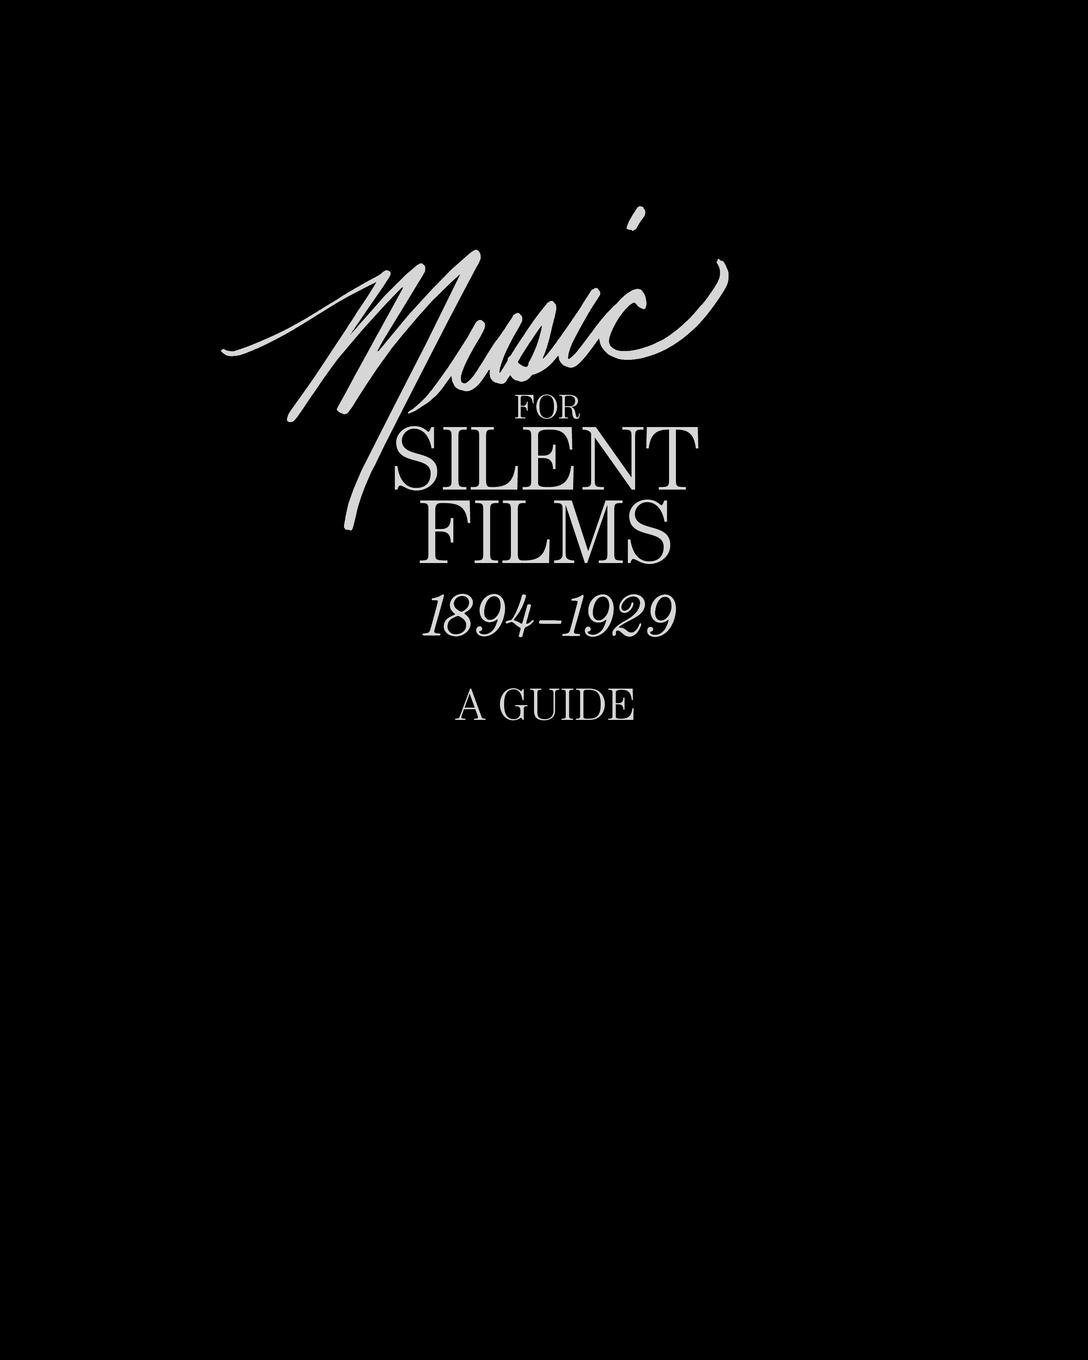 Gillian B. Anderson, Eileen Bowser, Library of Congress Music for Silent Films 1894-1929. A Guide